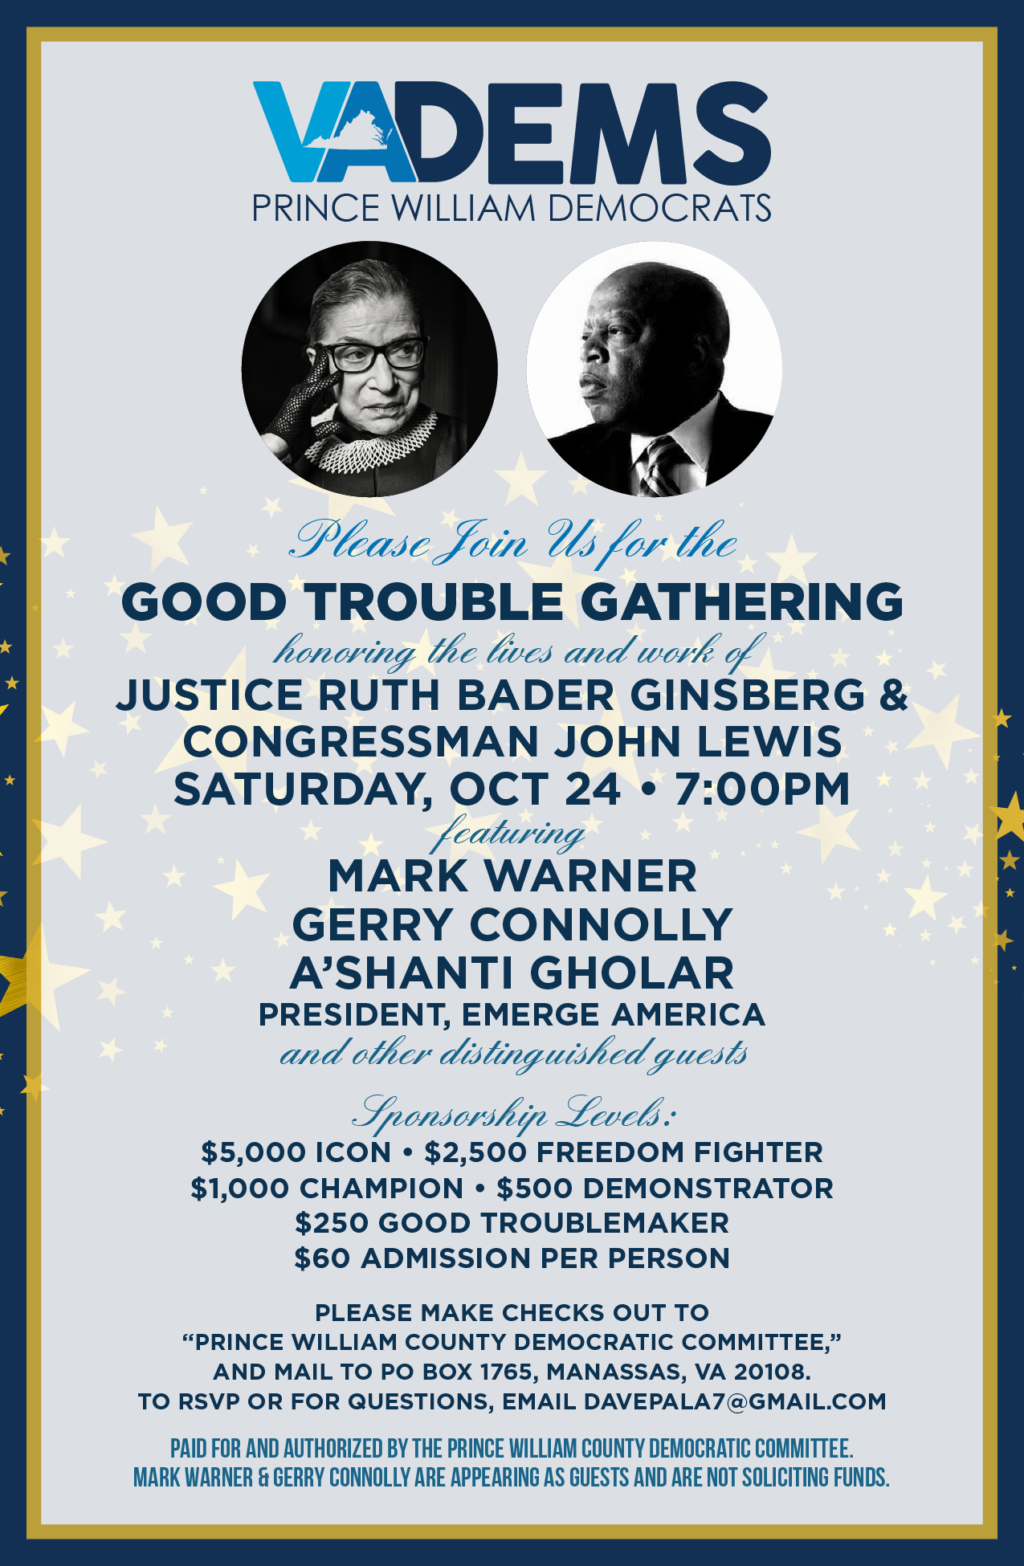 Prince William County Dems Good Trouble Gathering Event